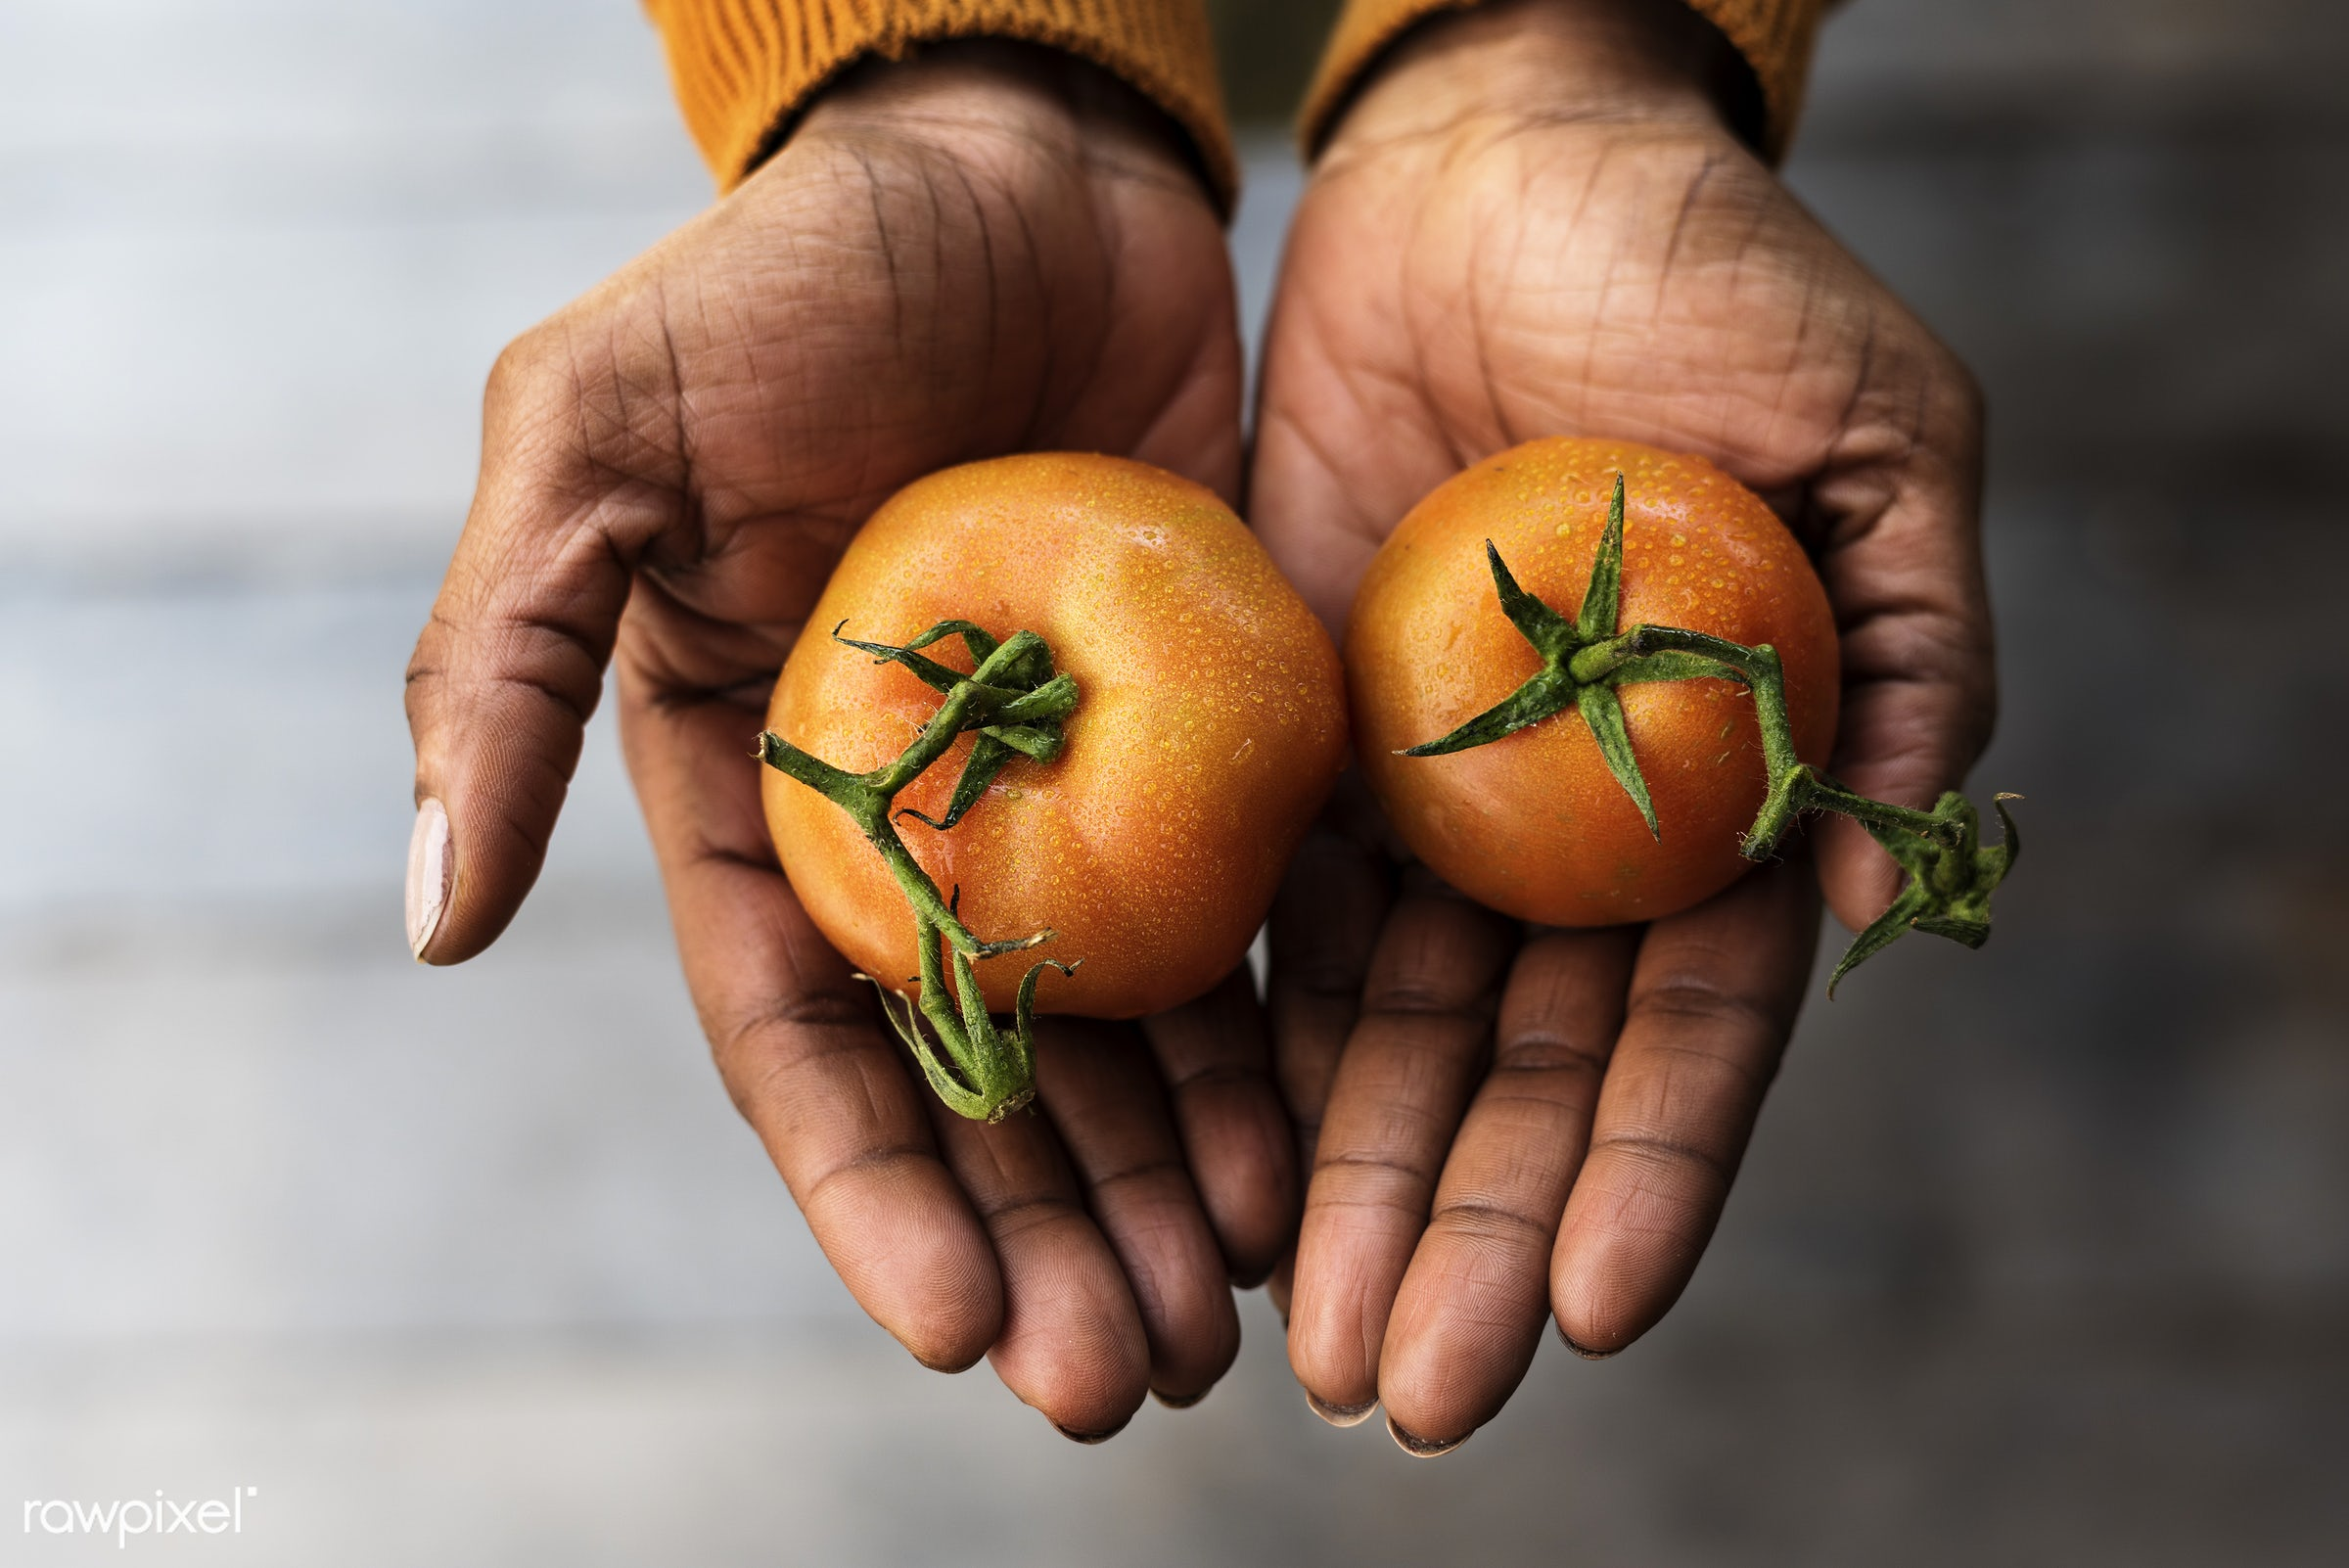 raw, plant, tomato, botany, show, people, hand, nature, farmer, hands, fresh, vegetarian, ecology, hold, season, agriculture...